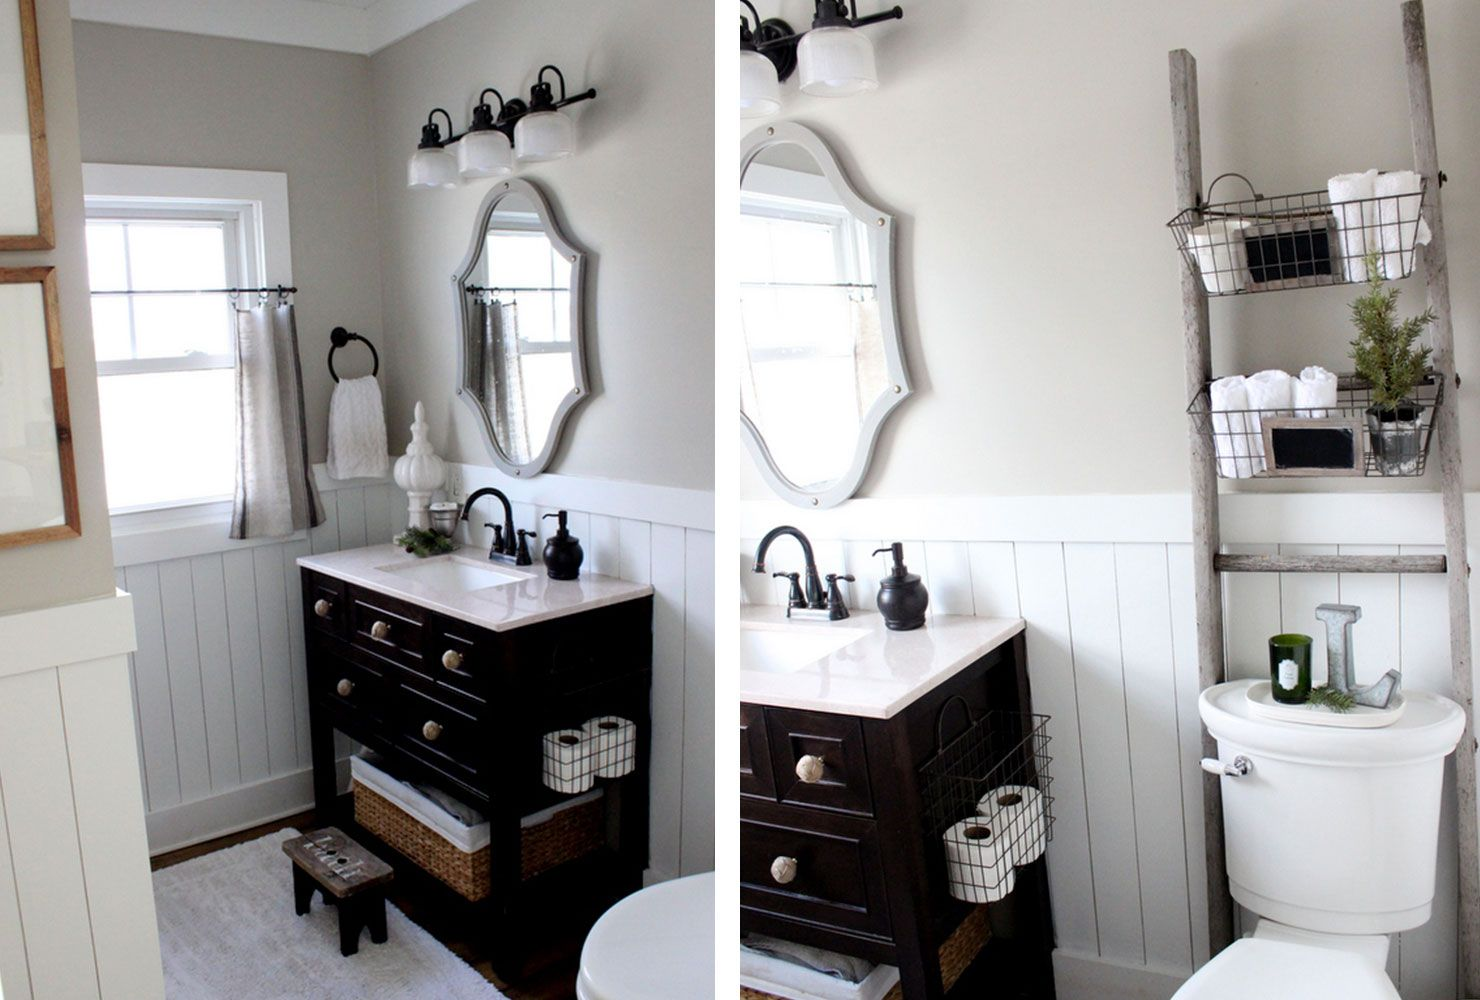 76 Ways To Decorate A Small Bathroom Shutterfly Main Bathroom Decorating Ideas Small Bathroom Vanities Bathroom Vanity Decor Small bathroom decorating ideas